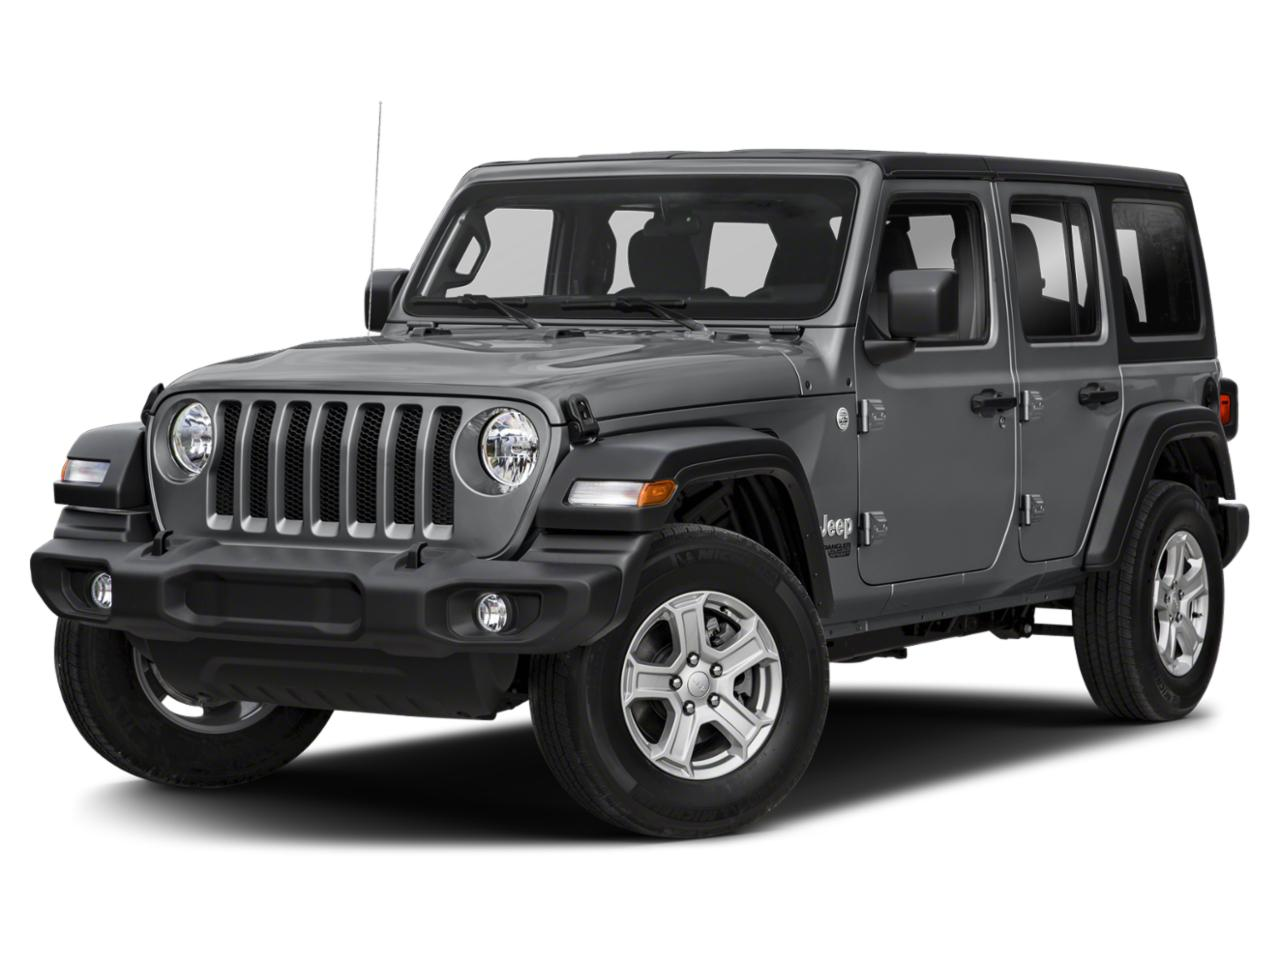 2020 Jeep Wrangler Unlimited Vehicle Photo in Oshkosh, WI 54901